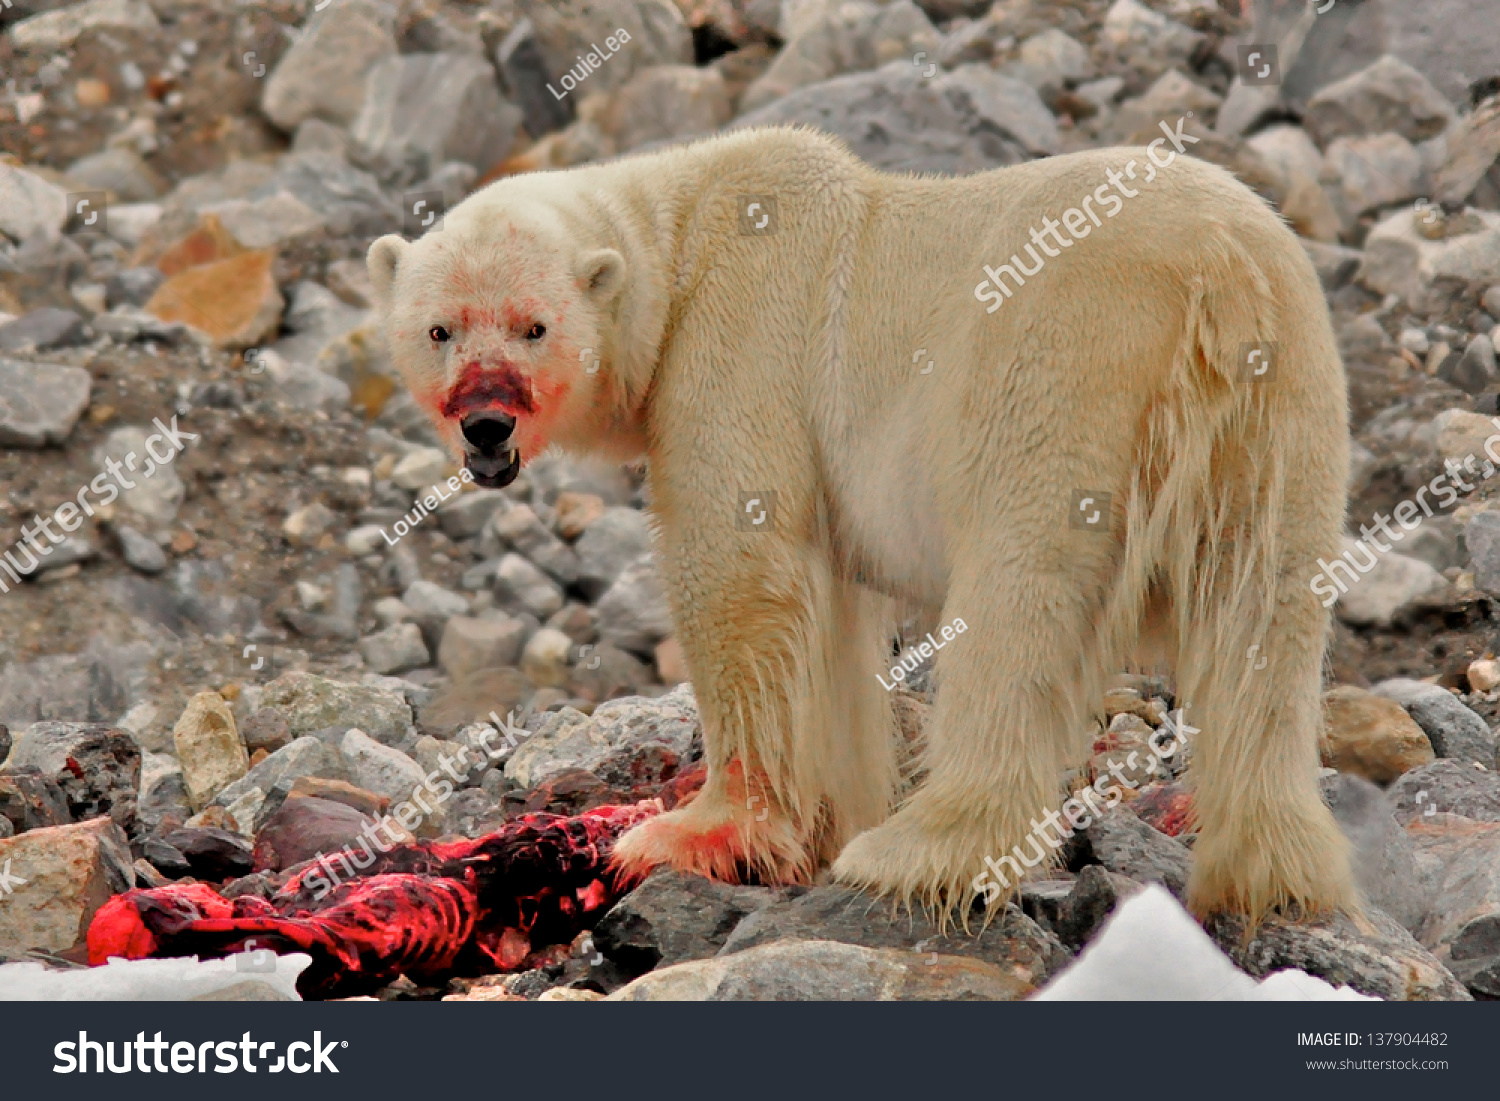 polar bear thesis Polar bear evolution is a continuing story the polar bear, the largest land carnivore in north america, one of the largest animals in the world and a favorite at zoos worldwide, has, over the years, adapted to its harsh arctic environment.